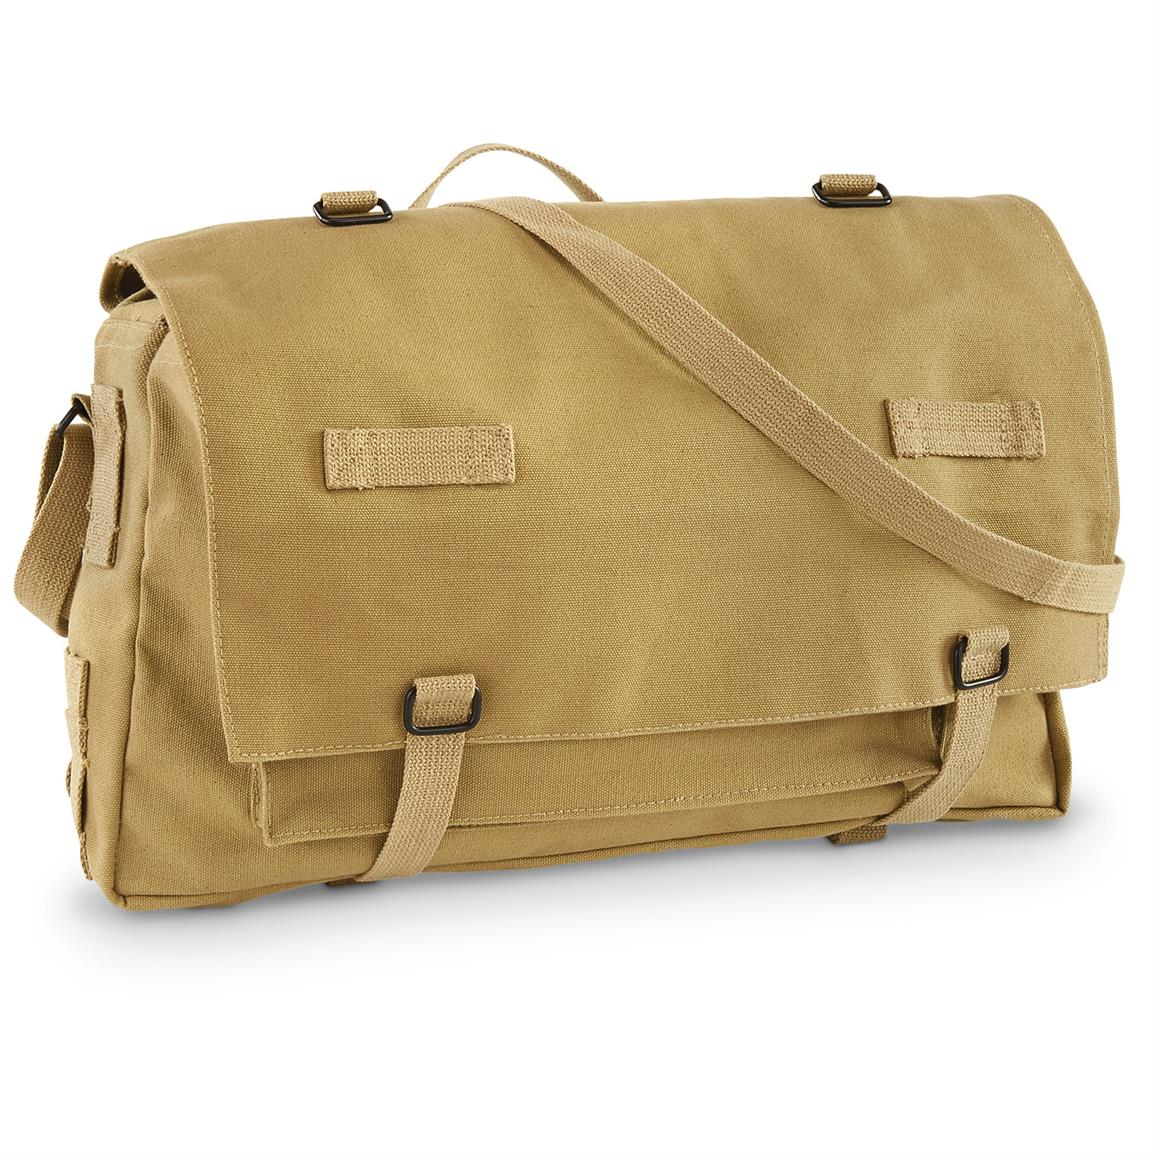 German Military-style Jumbo Rations Bag, Khaki